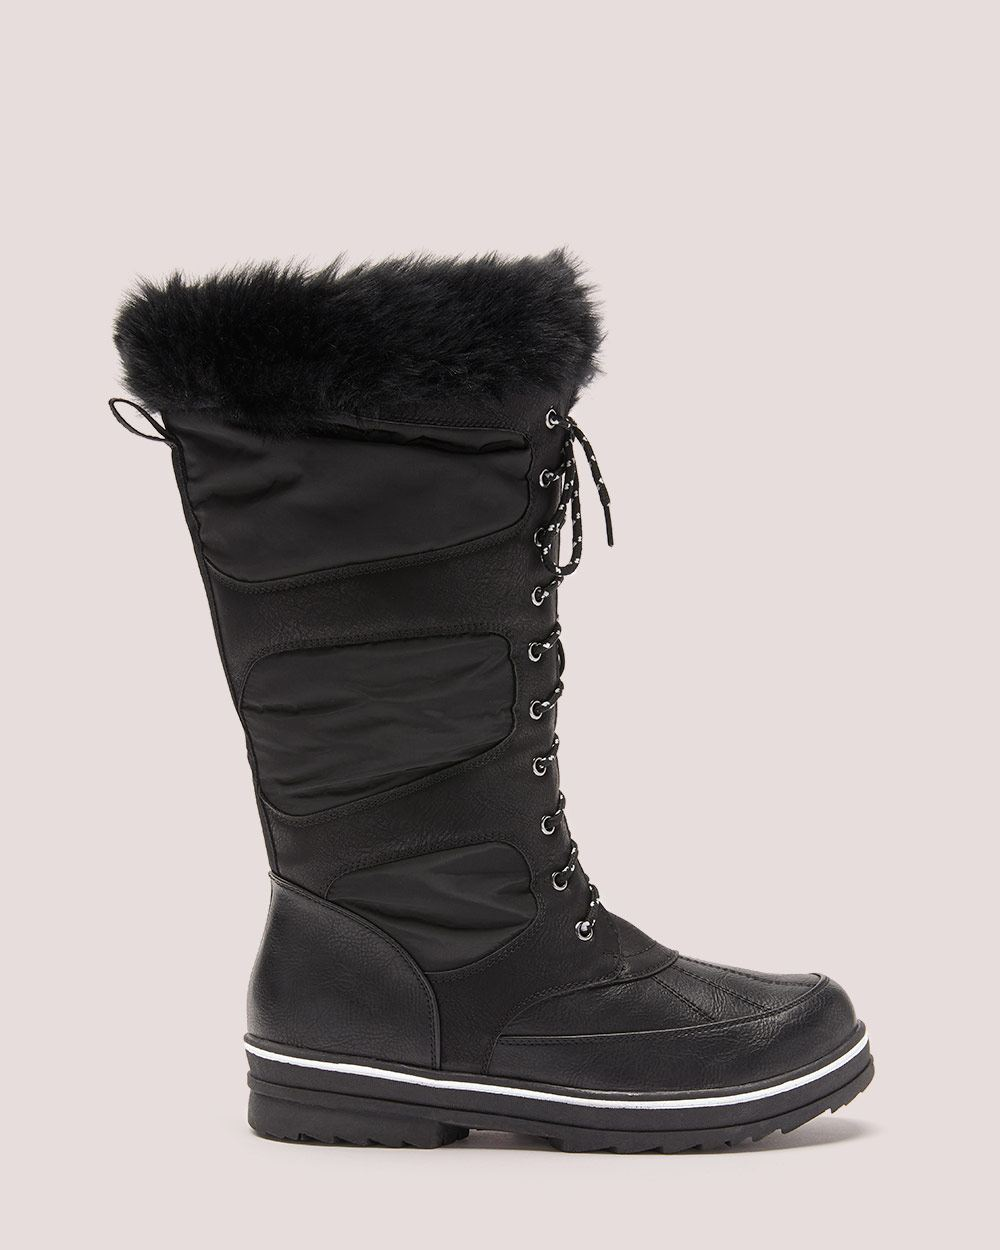 Winter Boot with Faux-Fur - Addition Elle ($115 CAD)